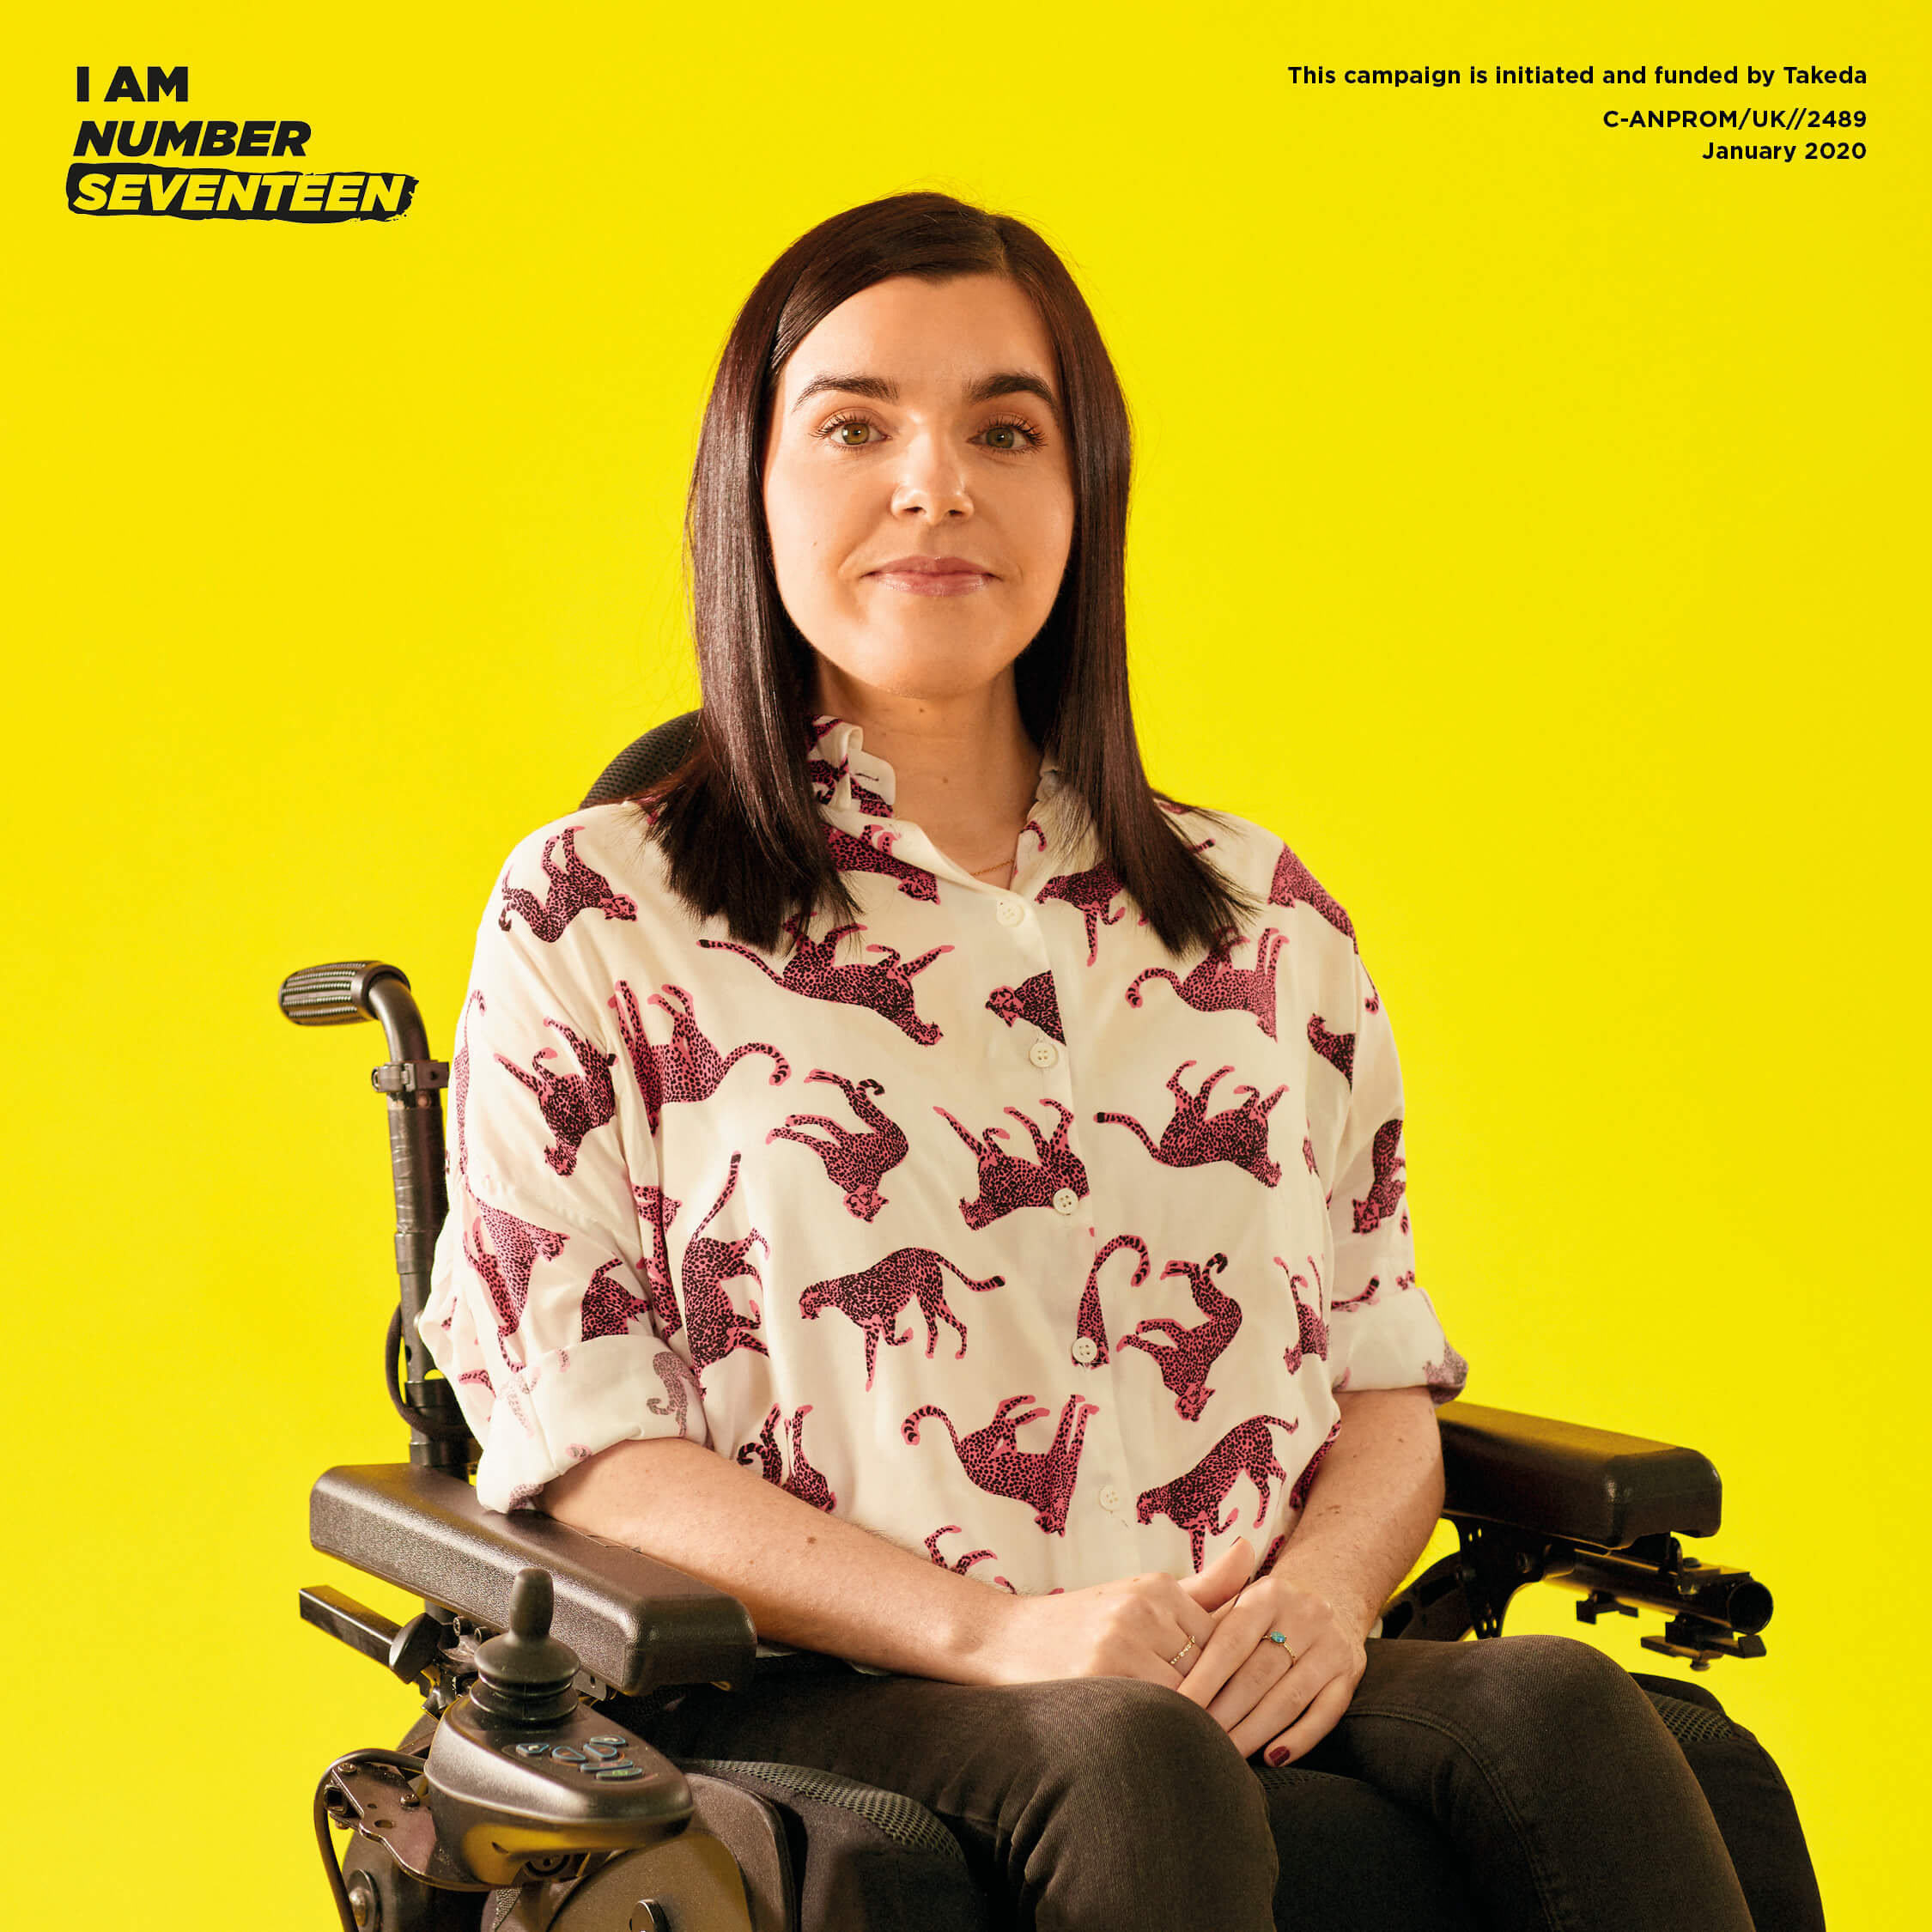 Emma sitting in her wheelchair against a yellow background. Emma is wearing black skinny jeans and a white shirt with pink leopards.